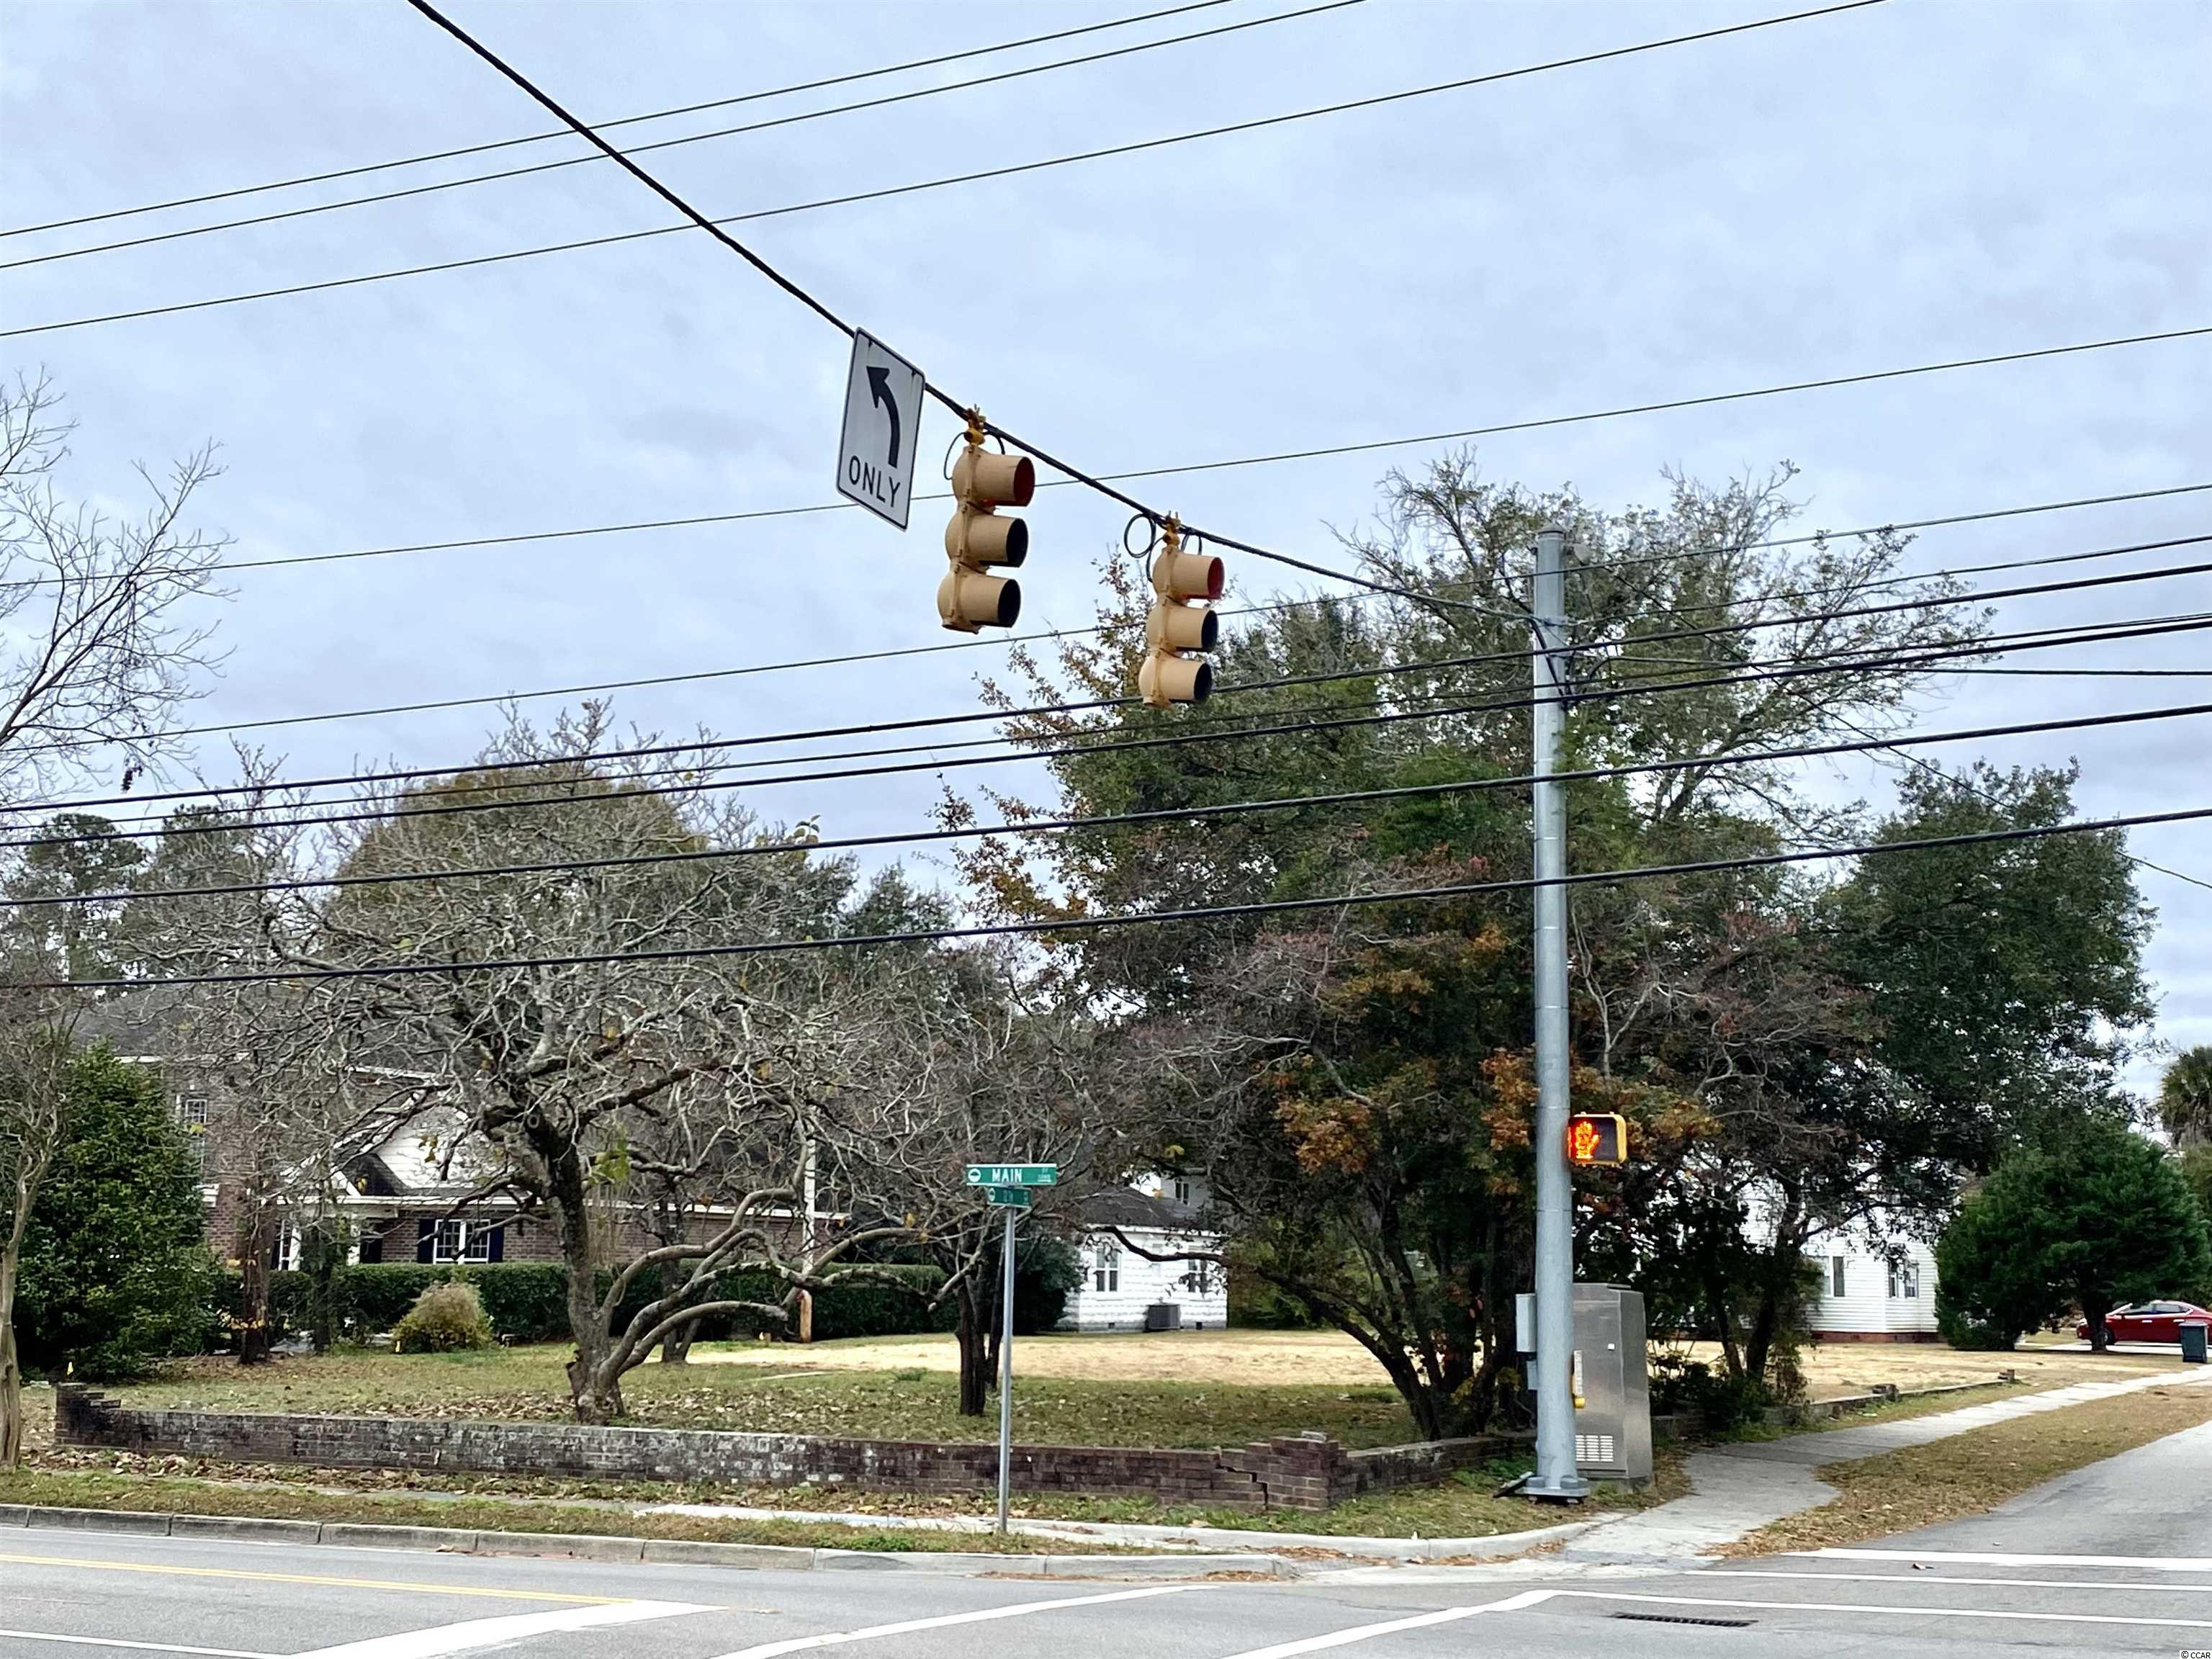 Rare opportunity to own a large corner lot on Main Street. 87x232 lot, .46 acre. Home has good bones but would need total rehab. Zone Professional and R2. Call today for information on possible uses.